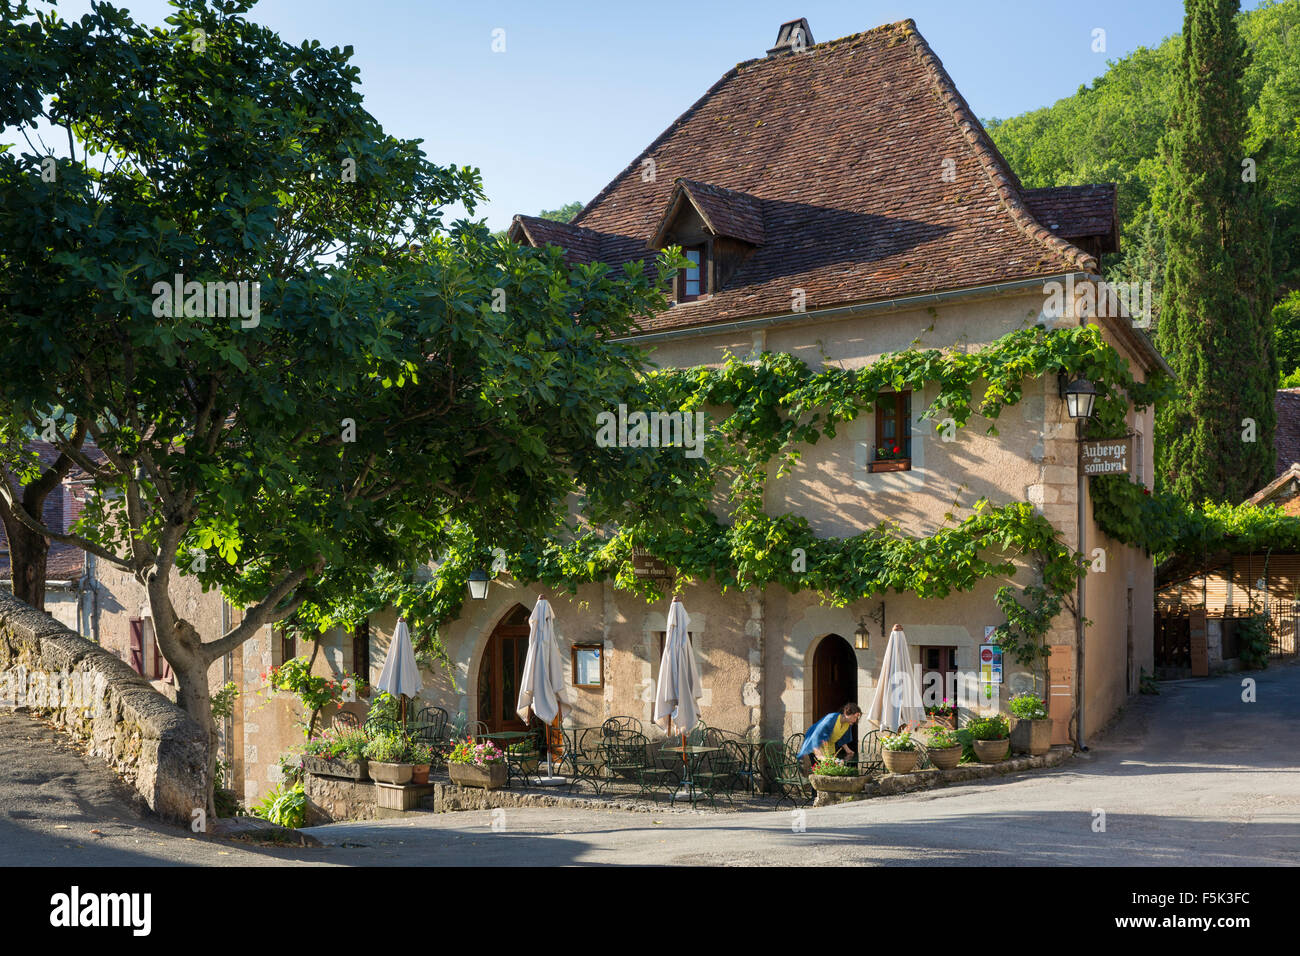 Getting ready to serve breakfast at the cafe, Saint-Cirq-Lapopie, Lot Valley, Midi-Pyrenees, France - Stock Image